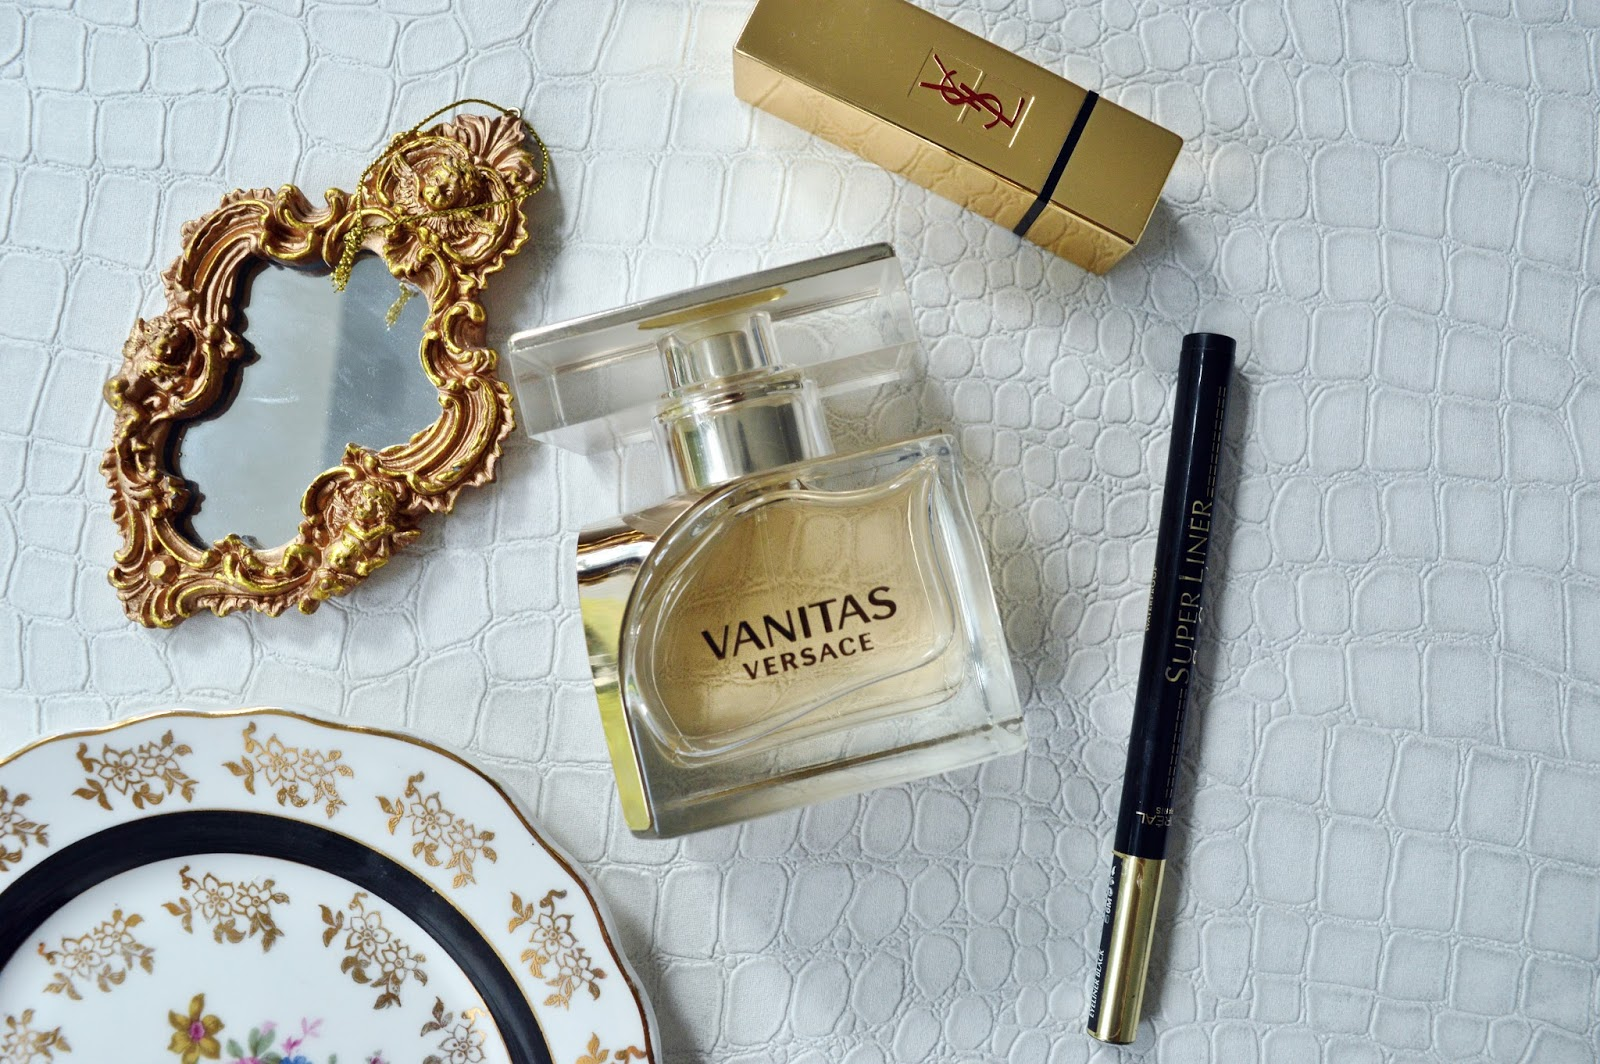 Beauty: Vanitas by Versace